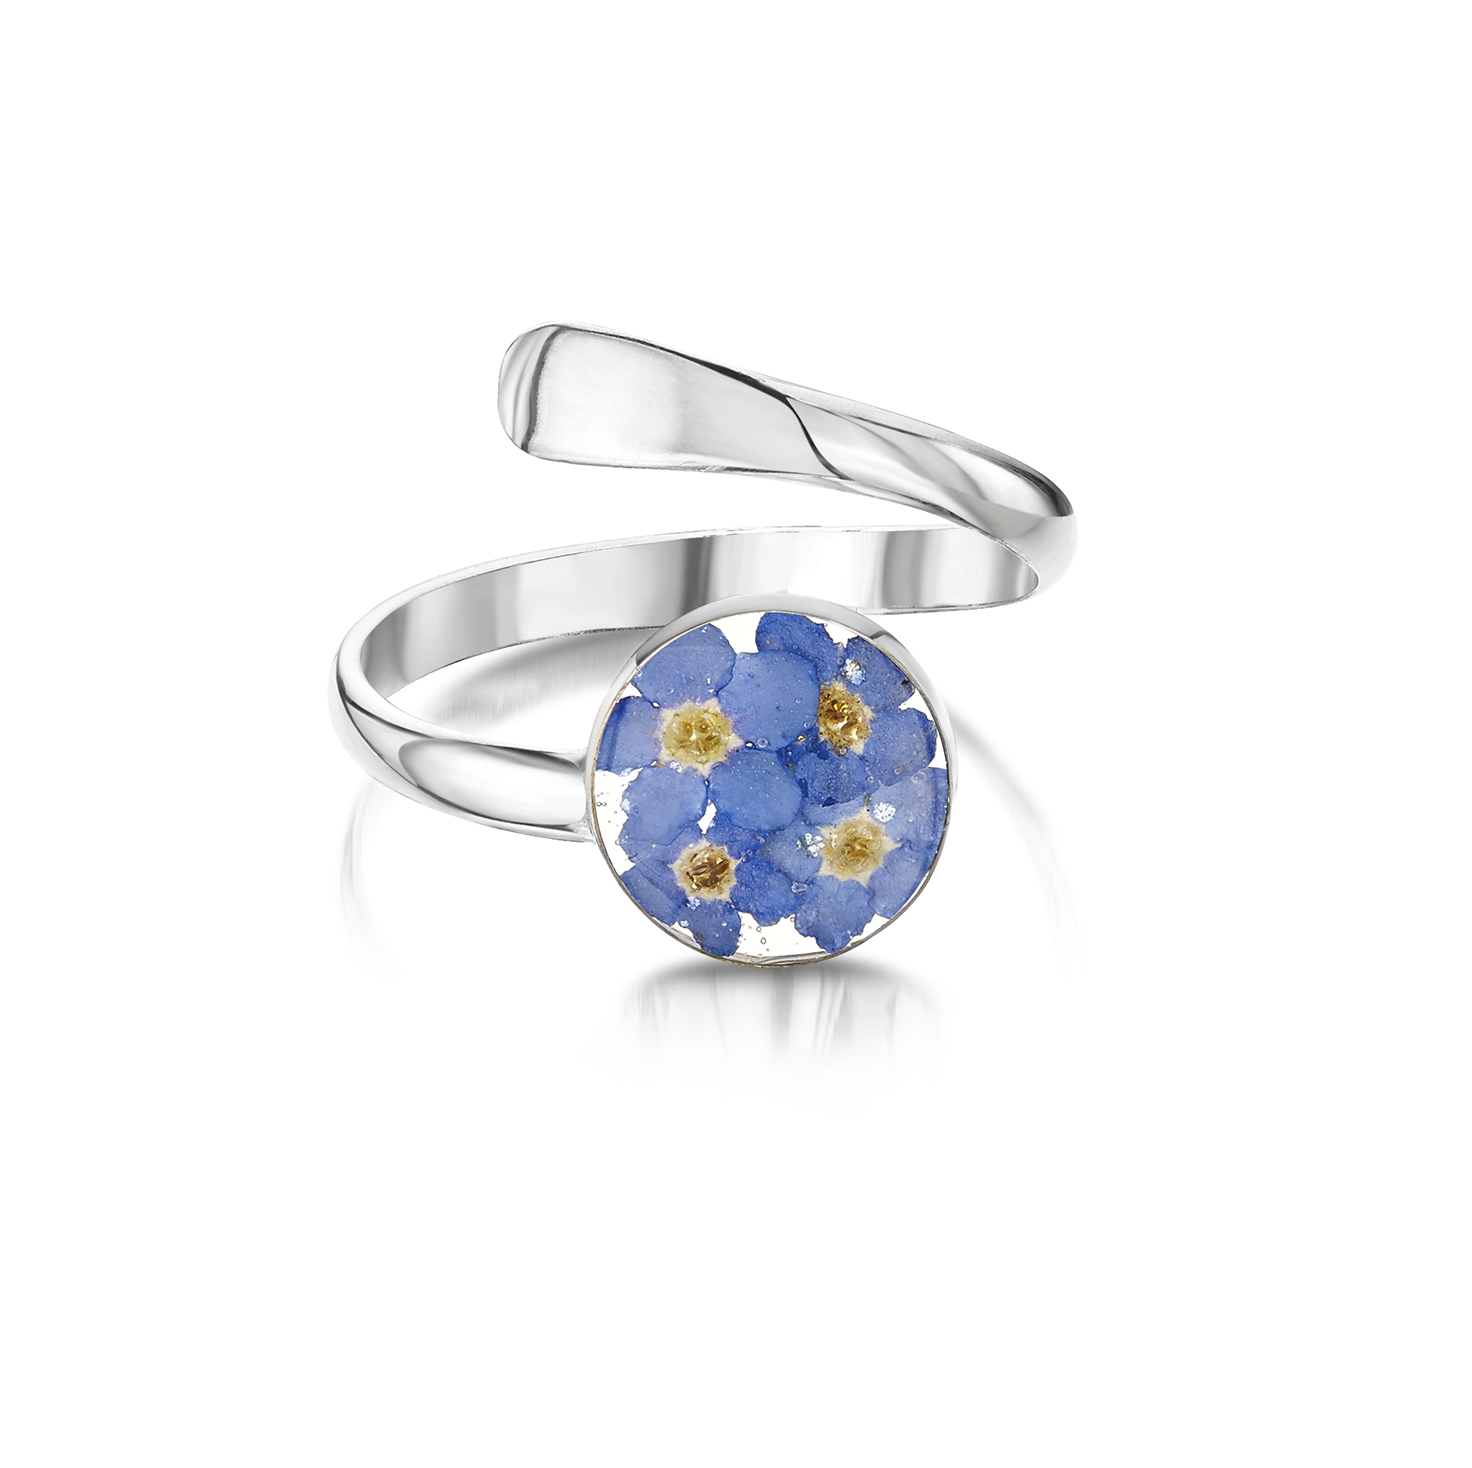 Shrieking Violet – Forget-me-not Sterling Silver Round Adjustable Ring in Box